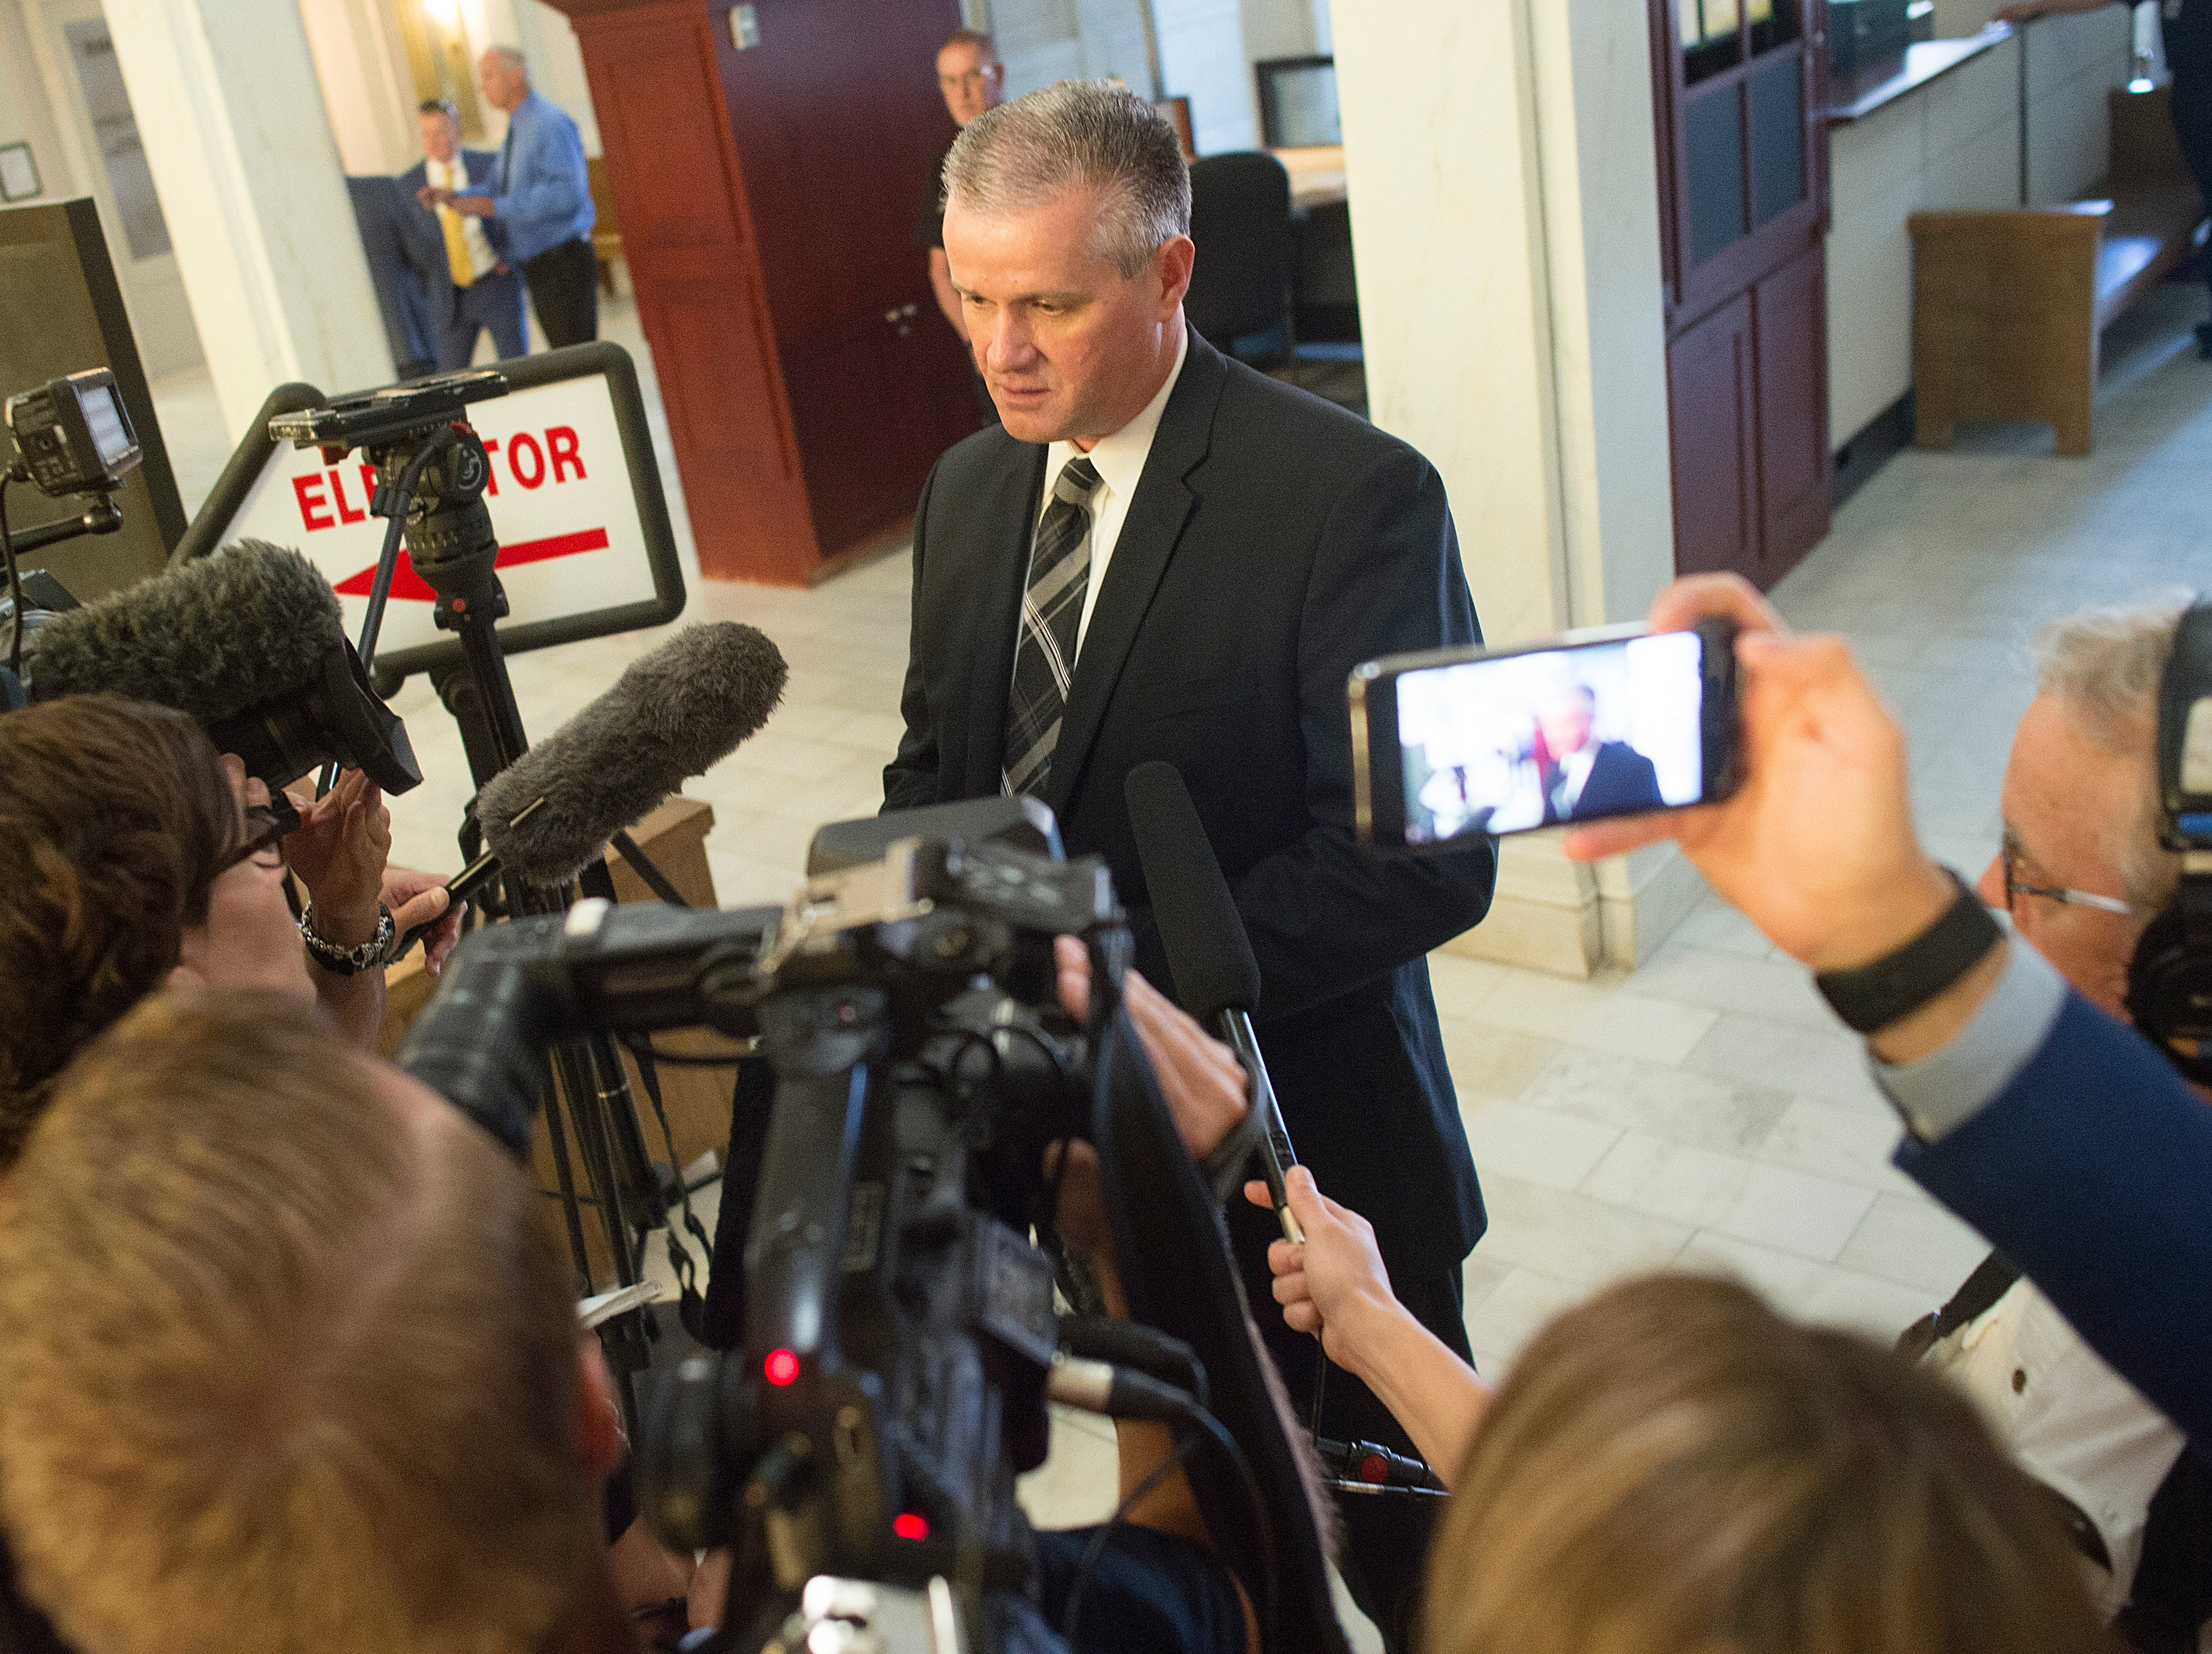 Weld County District Attorney Michael Rourke speaks with reporters after Christopher Watts made his first appearance at the Weld County Courthouse on Thursday, August 16, 2018. Watts was arrested in connection with the death of his pregnant wife, Shanann, and their two children, Bella and Celeste.